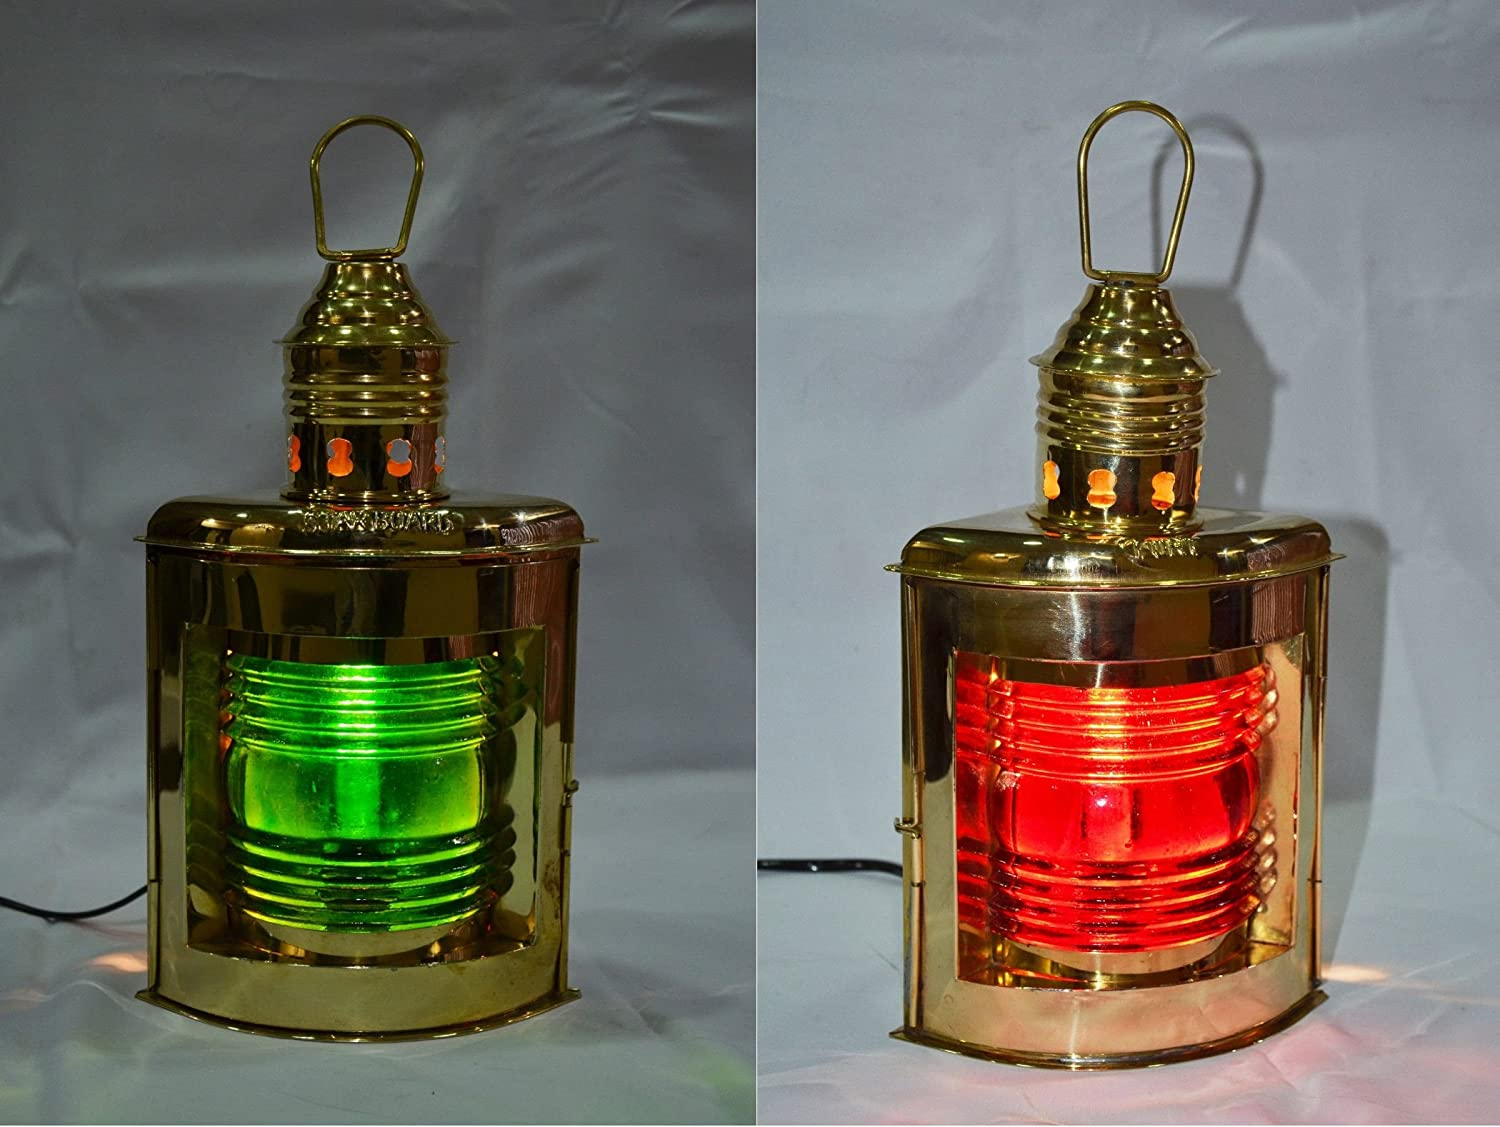 10/'/'New Green Oil Lamp Antique Style Brass Lantern ~Nautical Navy Ship Handmade.